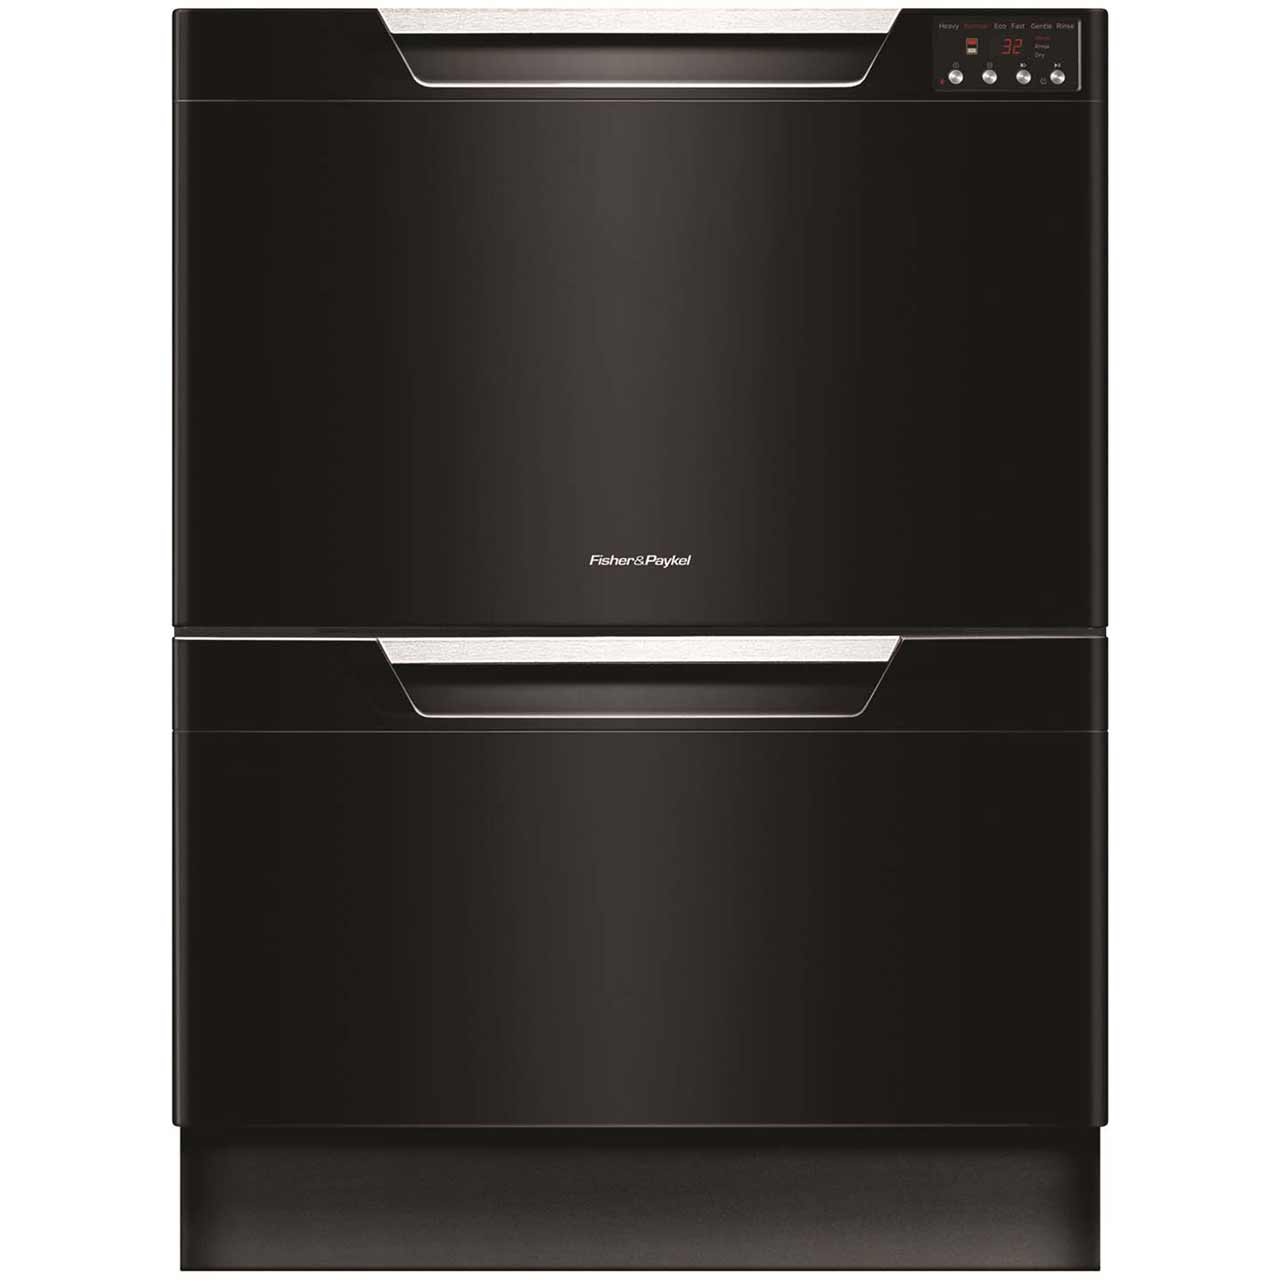 Fisher & Paykel Double DishDrawer? DD60DAHB8 Integrated Dishwasher in Black